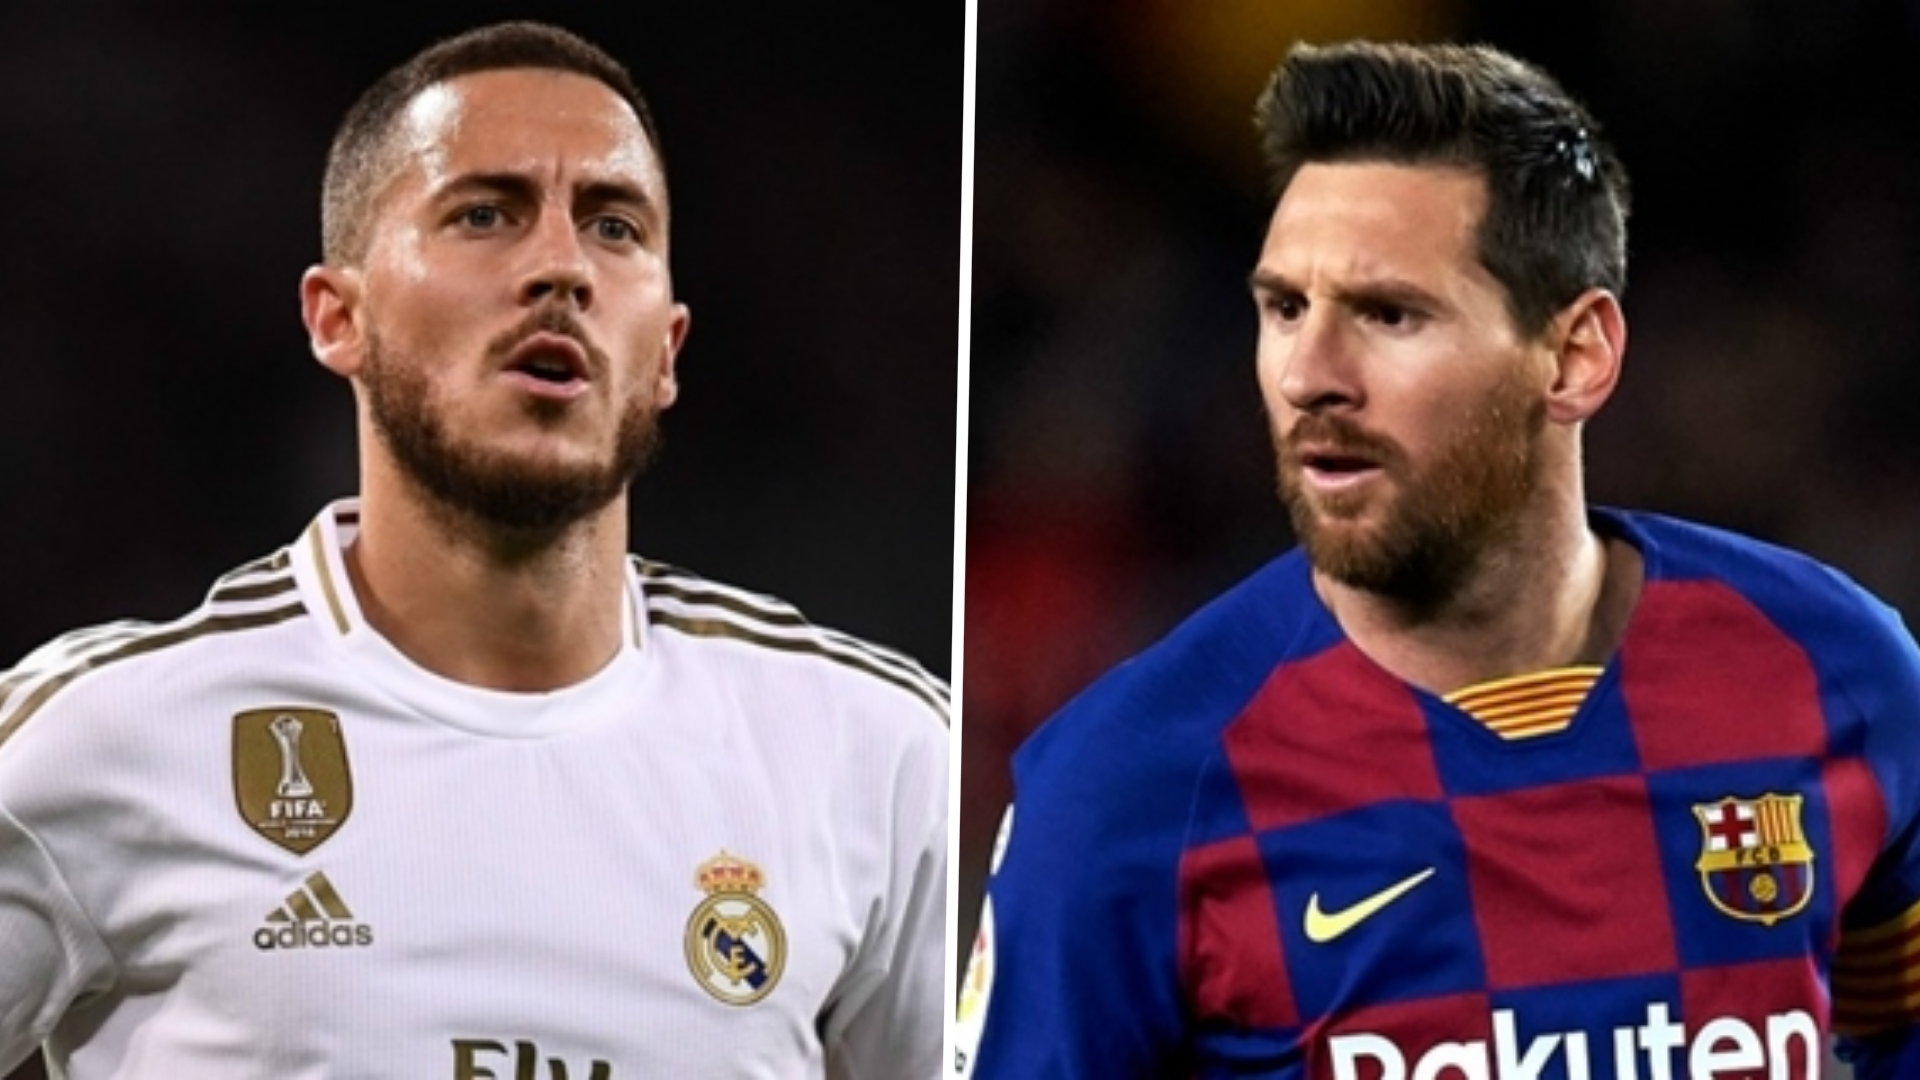 'Hazard's best level puts him alongside Messi' – Morientes expecting more from Real Madrid stars